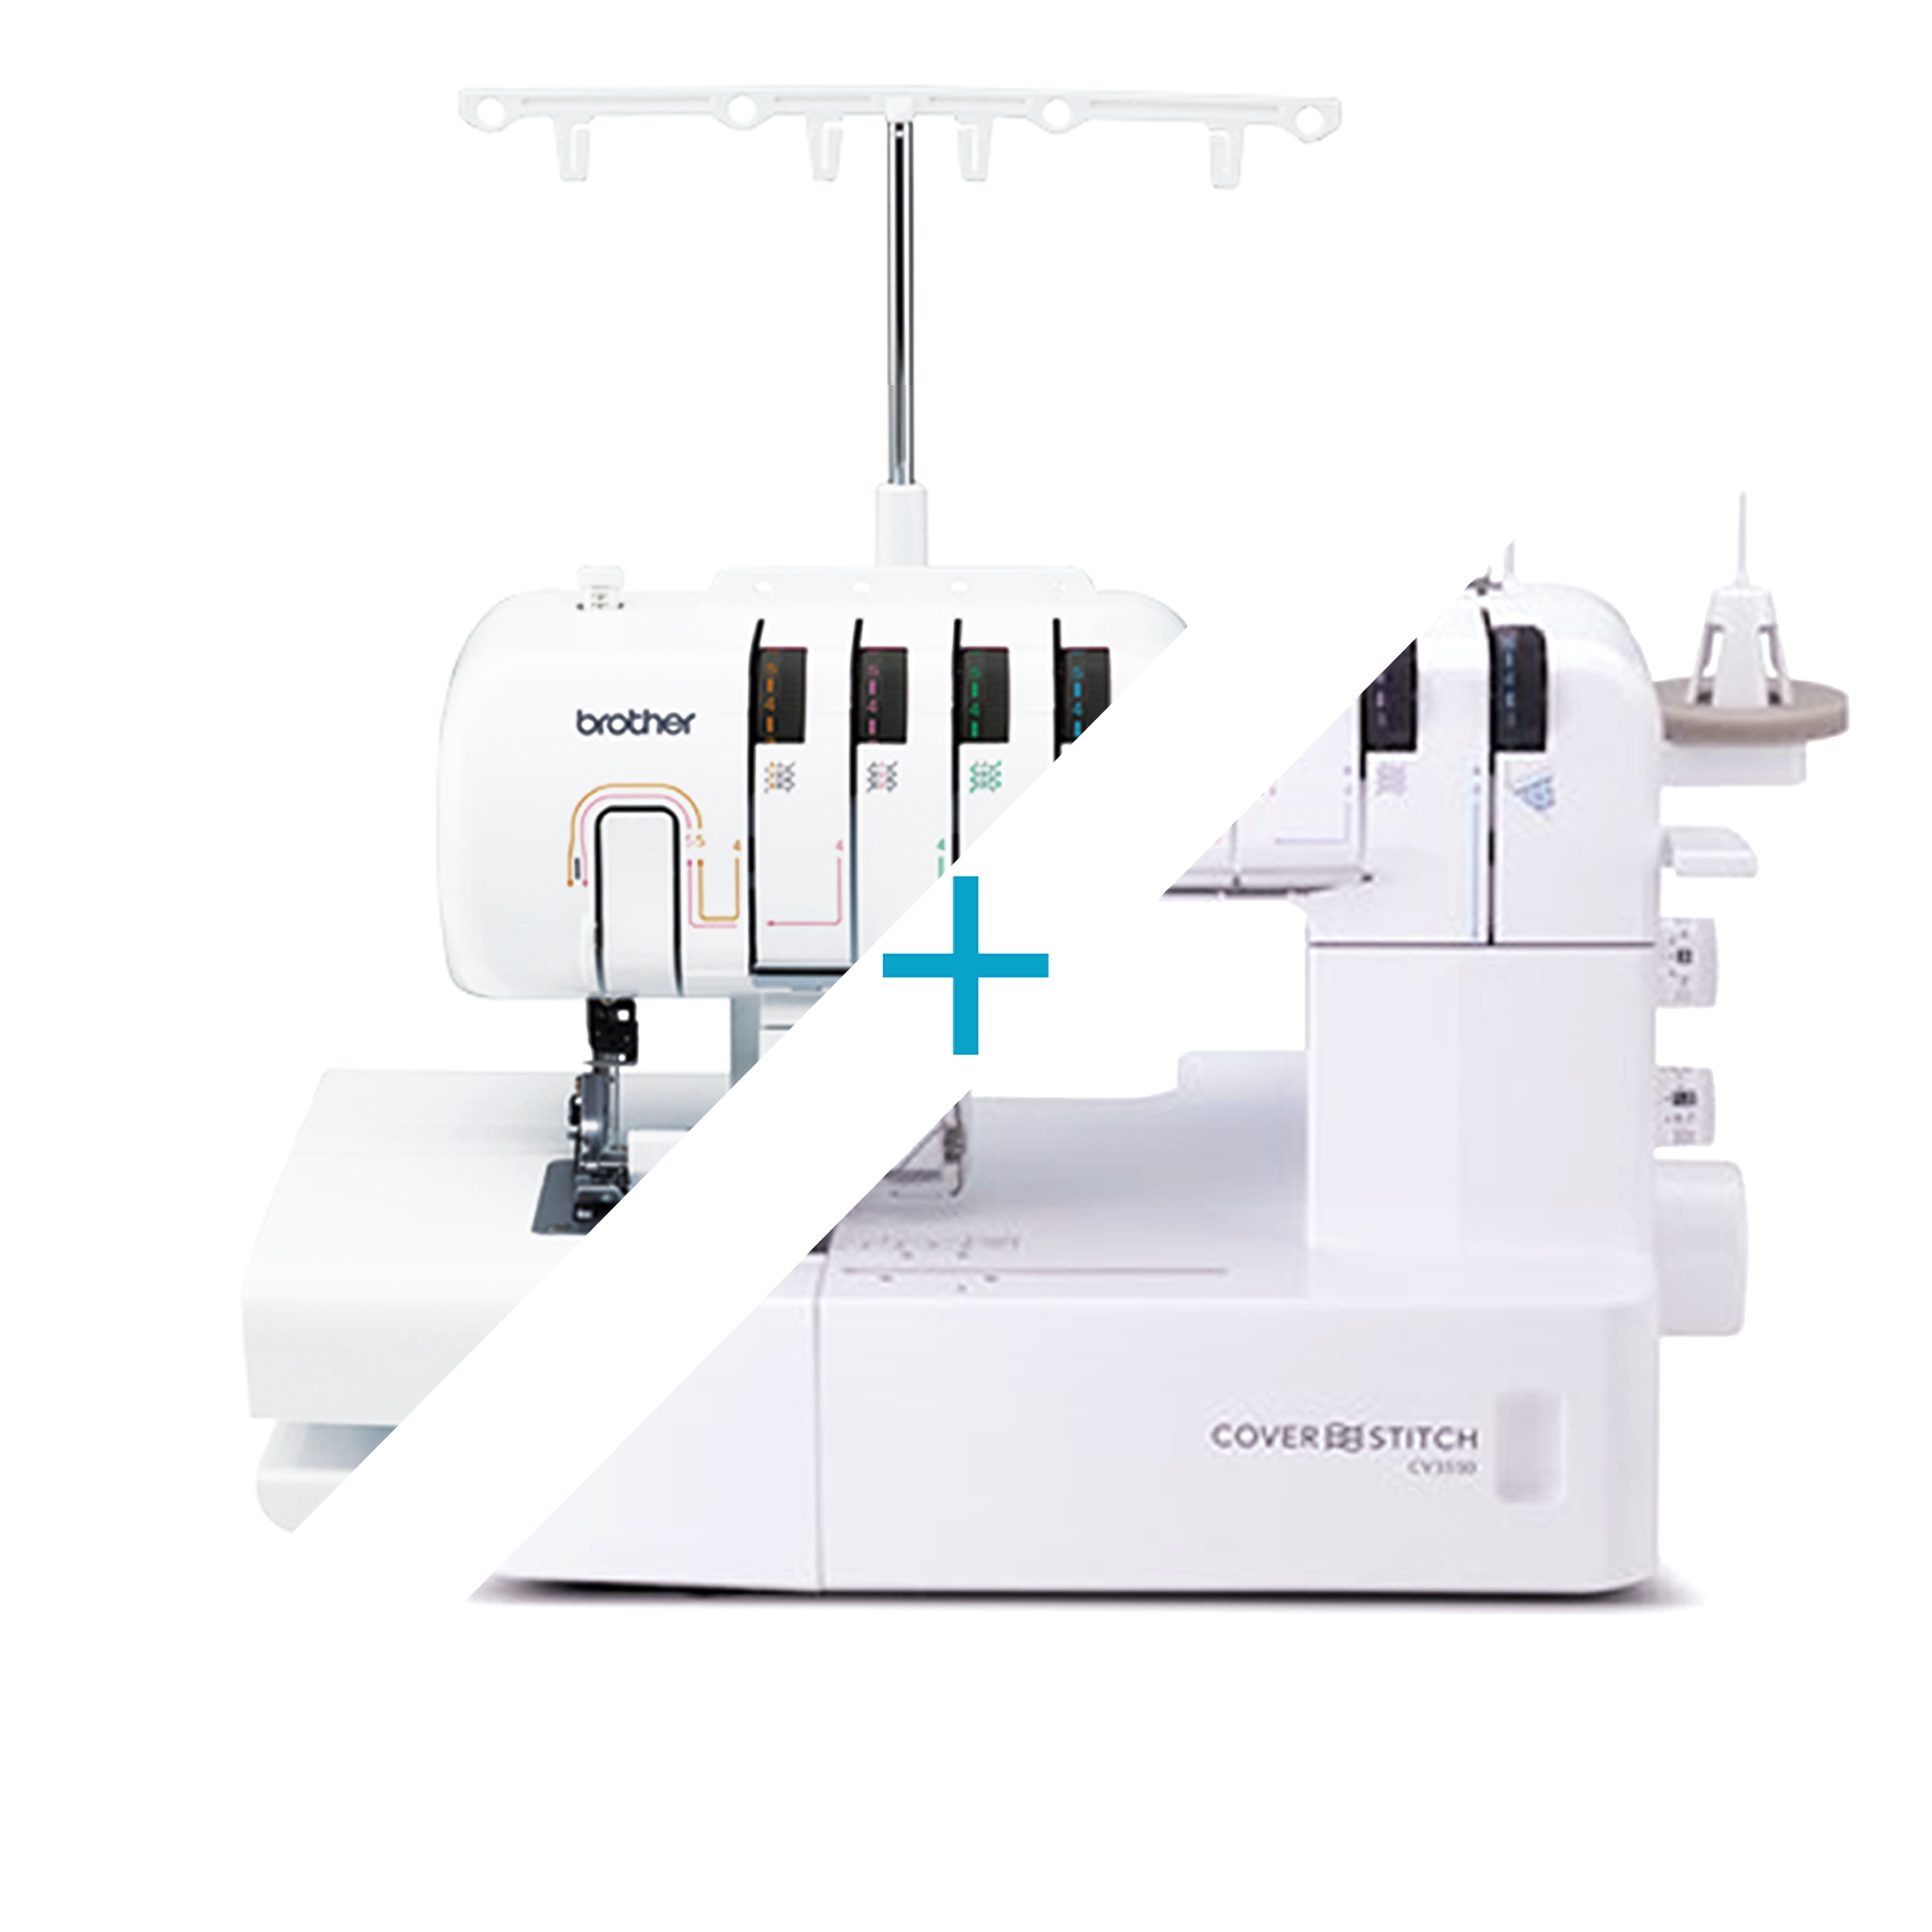 Brother CV3550 Coverstitch + 2504D Overlocker Combo